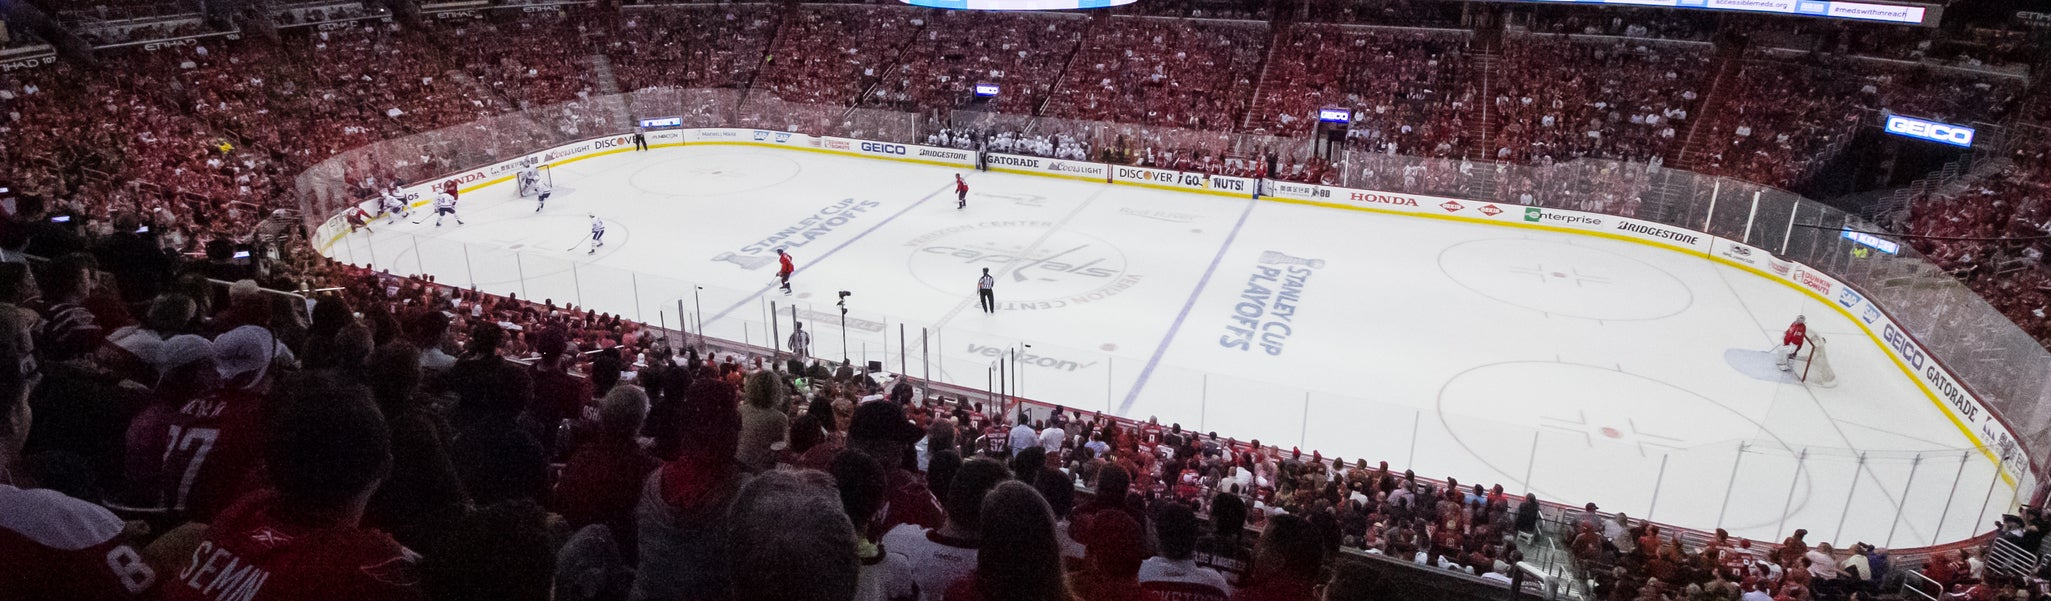 Seat view from Acela Level Center 216 at Capital One Arena